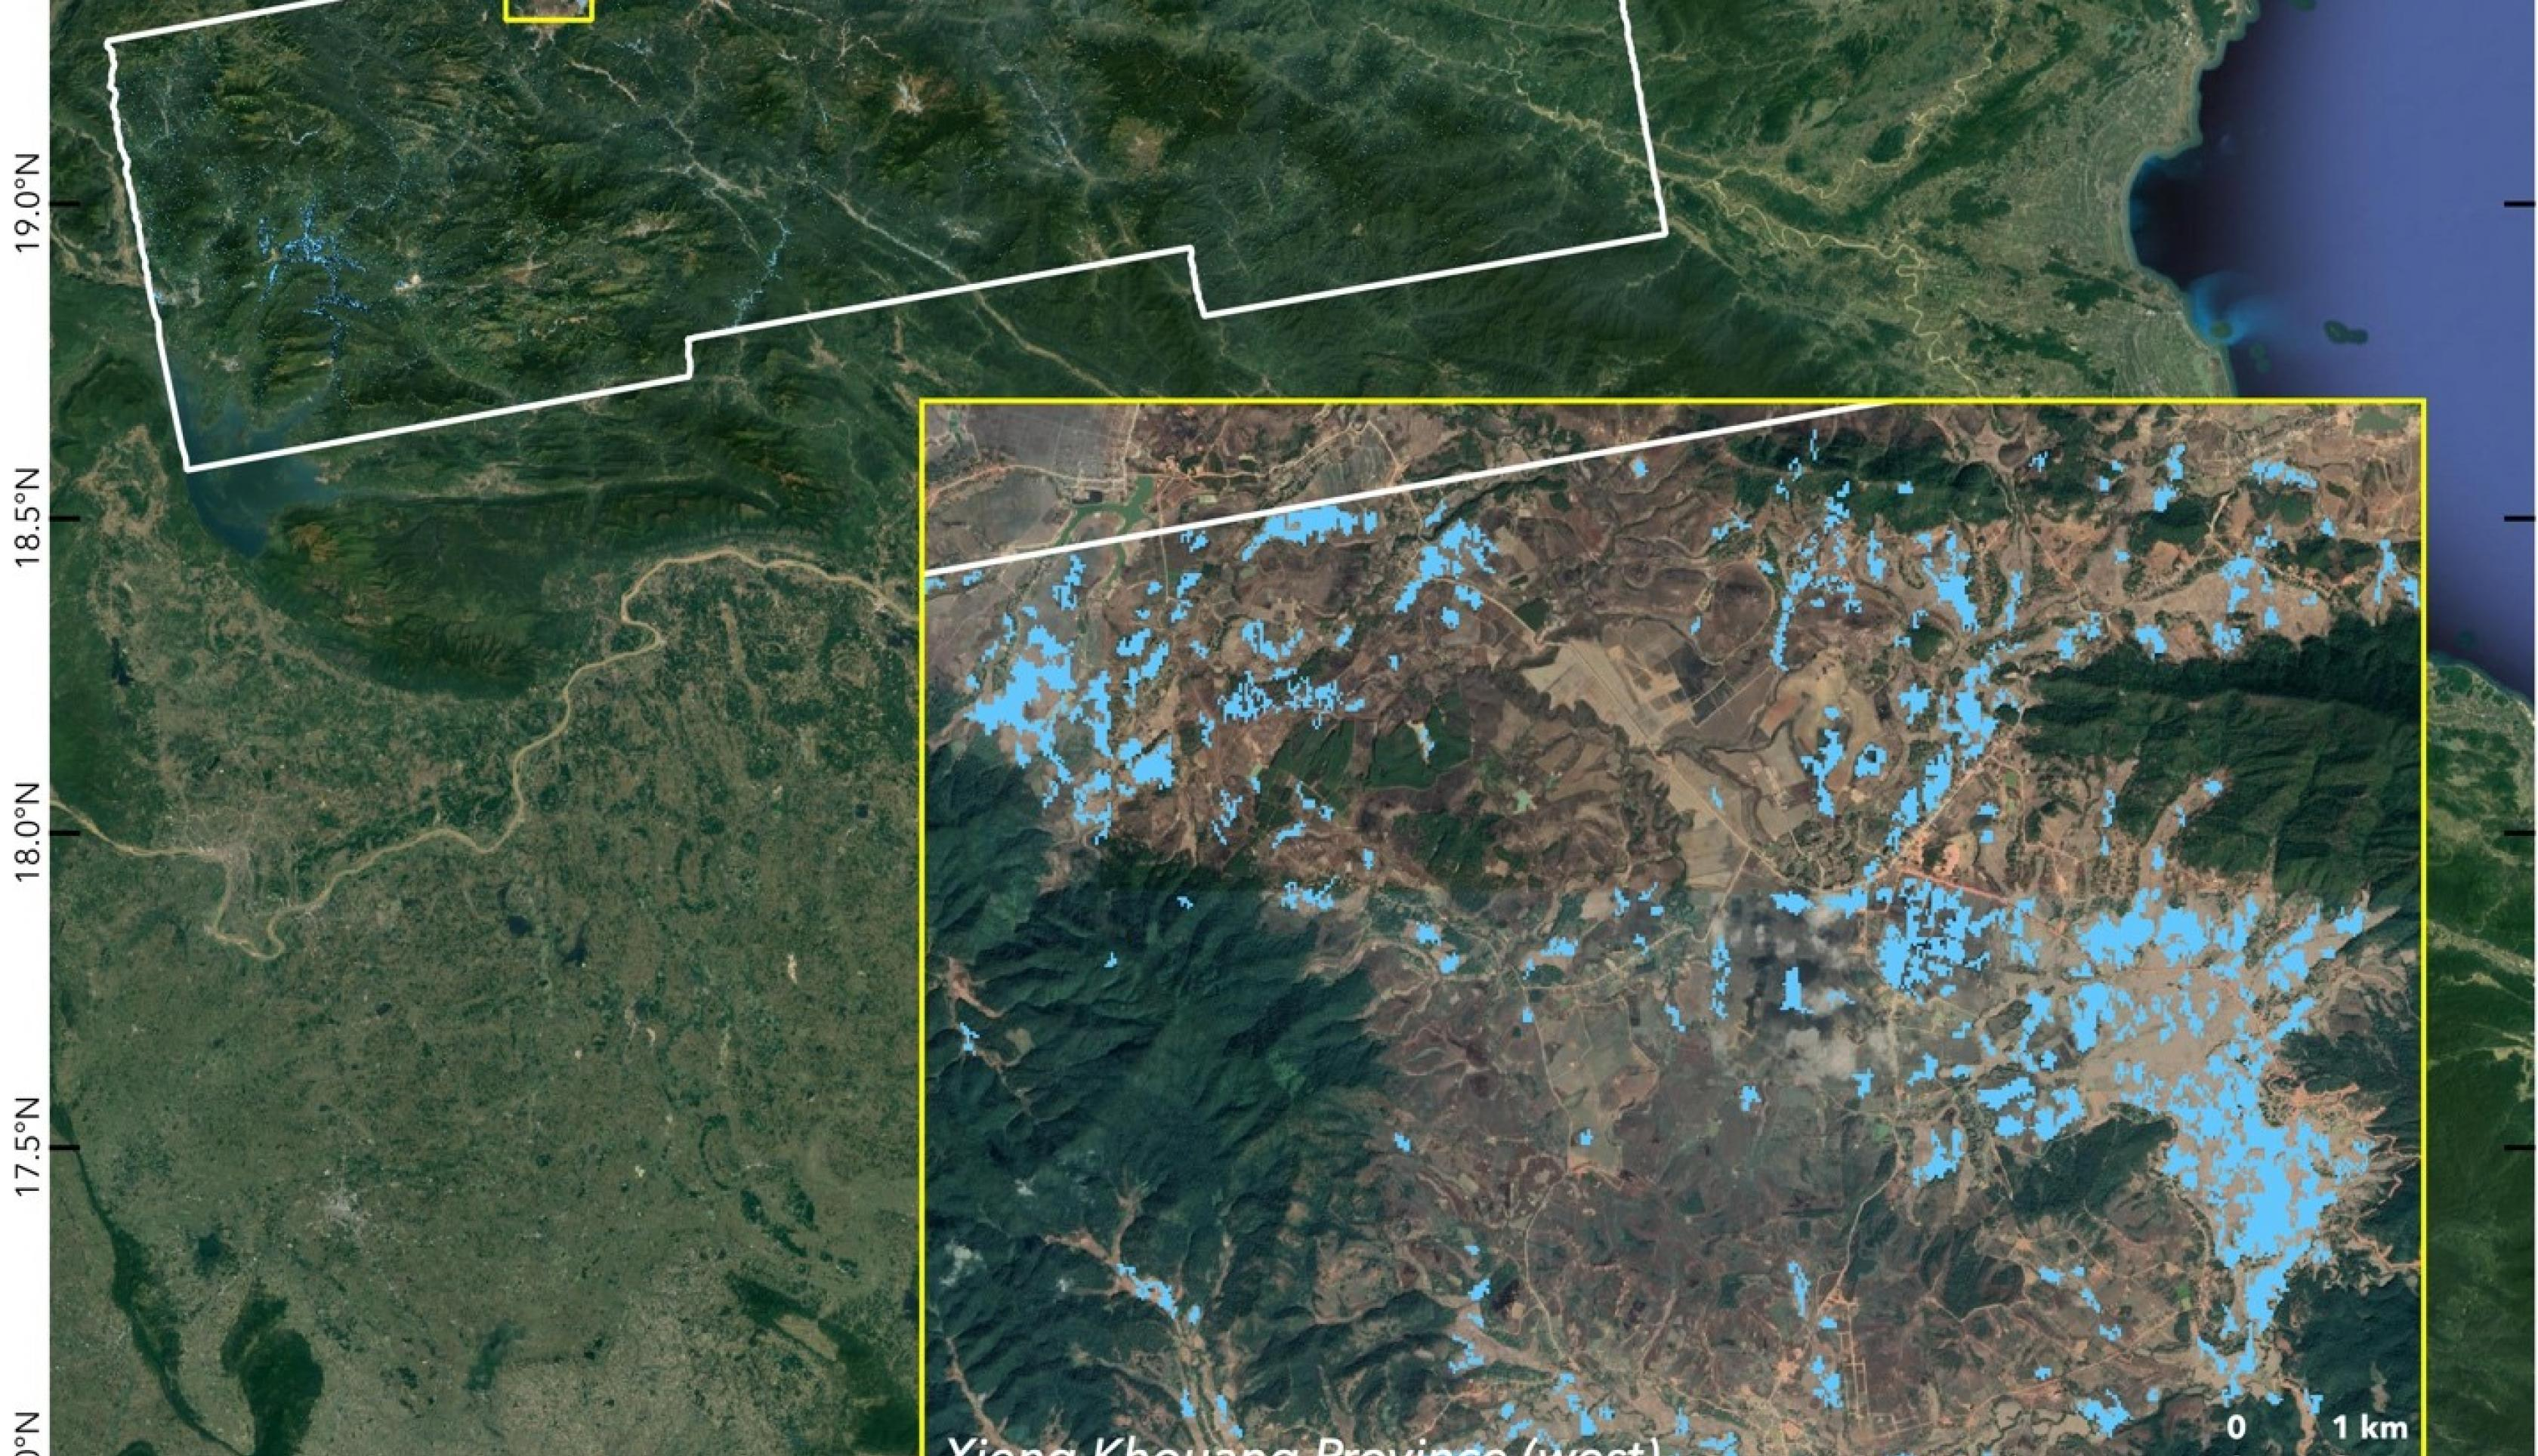 This preliminary Flood Proxy Map (FPM) is derived from SAR data of Copernicus Sentinel-1 mission, operated by ESA, acquired before (June 8) and during (June 14) the flood event. The white polygon indicates the map extents. The light blue pixels of 30 m in size indicate areas likely flooded in Xieng Khouang Province, Laos, due to heavy rains brought by Tropical Storm Koguma. The map may be less reliable over urban and vegetated areas. Credits: the Earth Observatory of Singapore (EOS)/NASA-JPL/Caltech. Contai